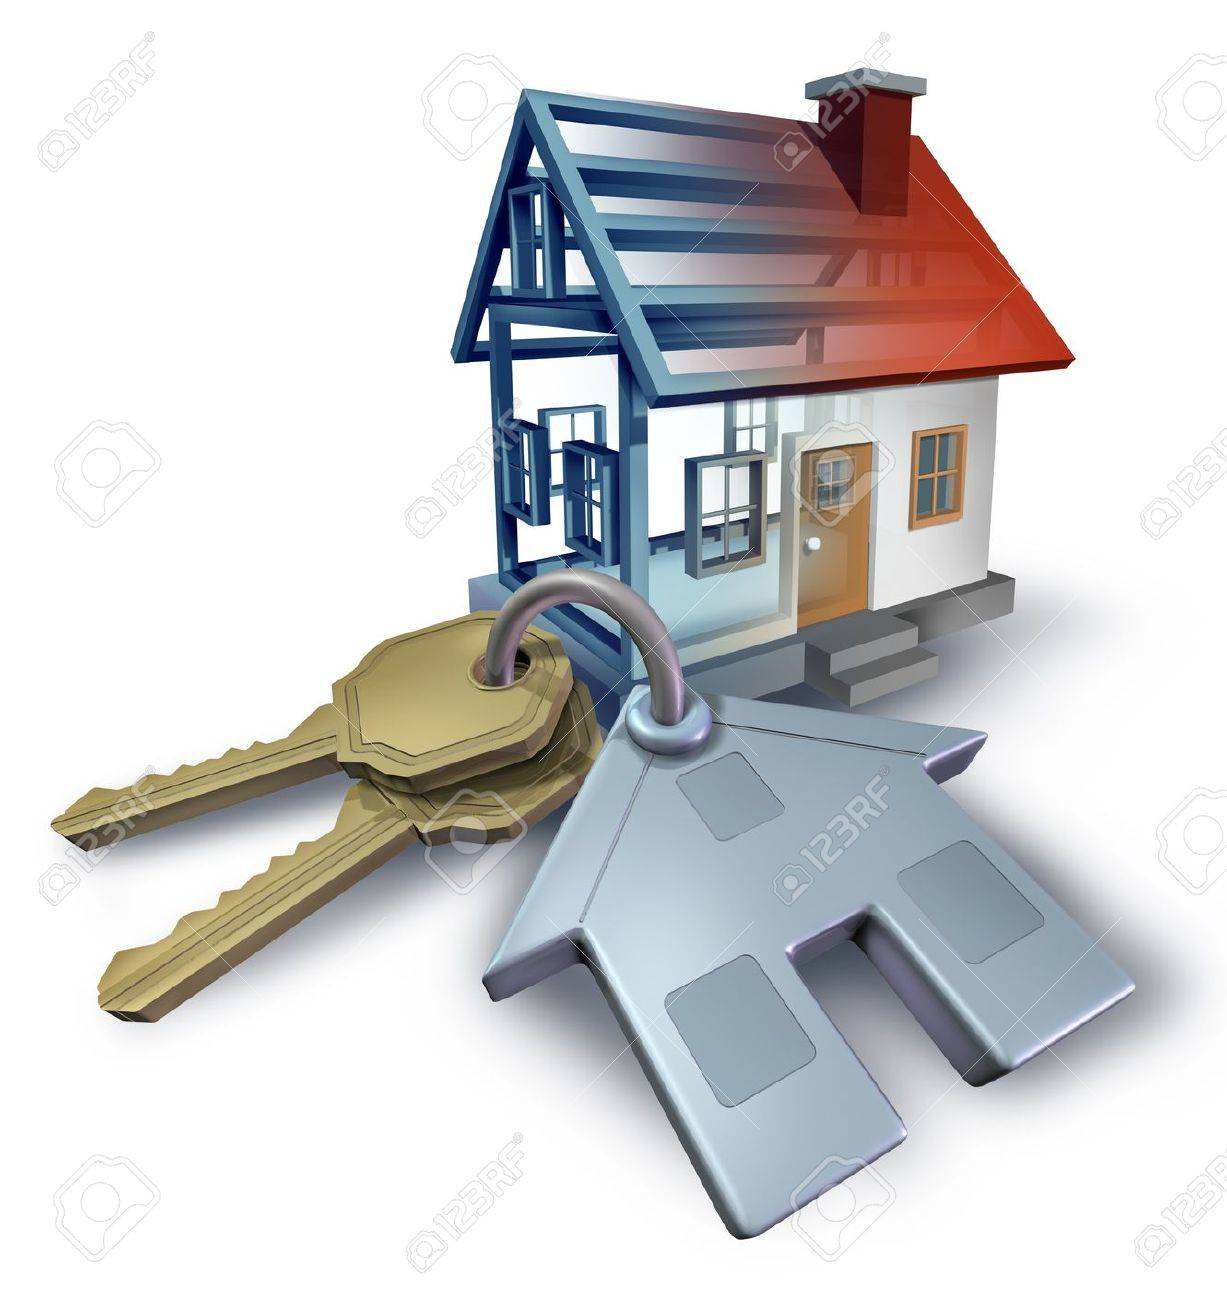 Real estate planning and building a home from blue print plans with house keys and a three dimensional residential structure on a white background Stock Photo - 19446940